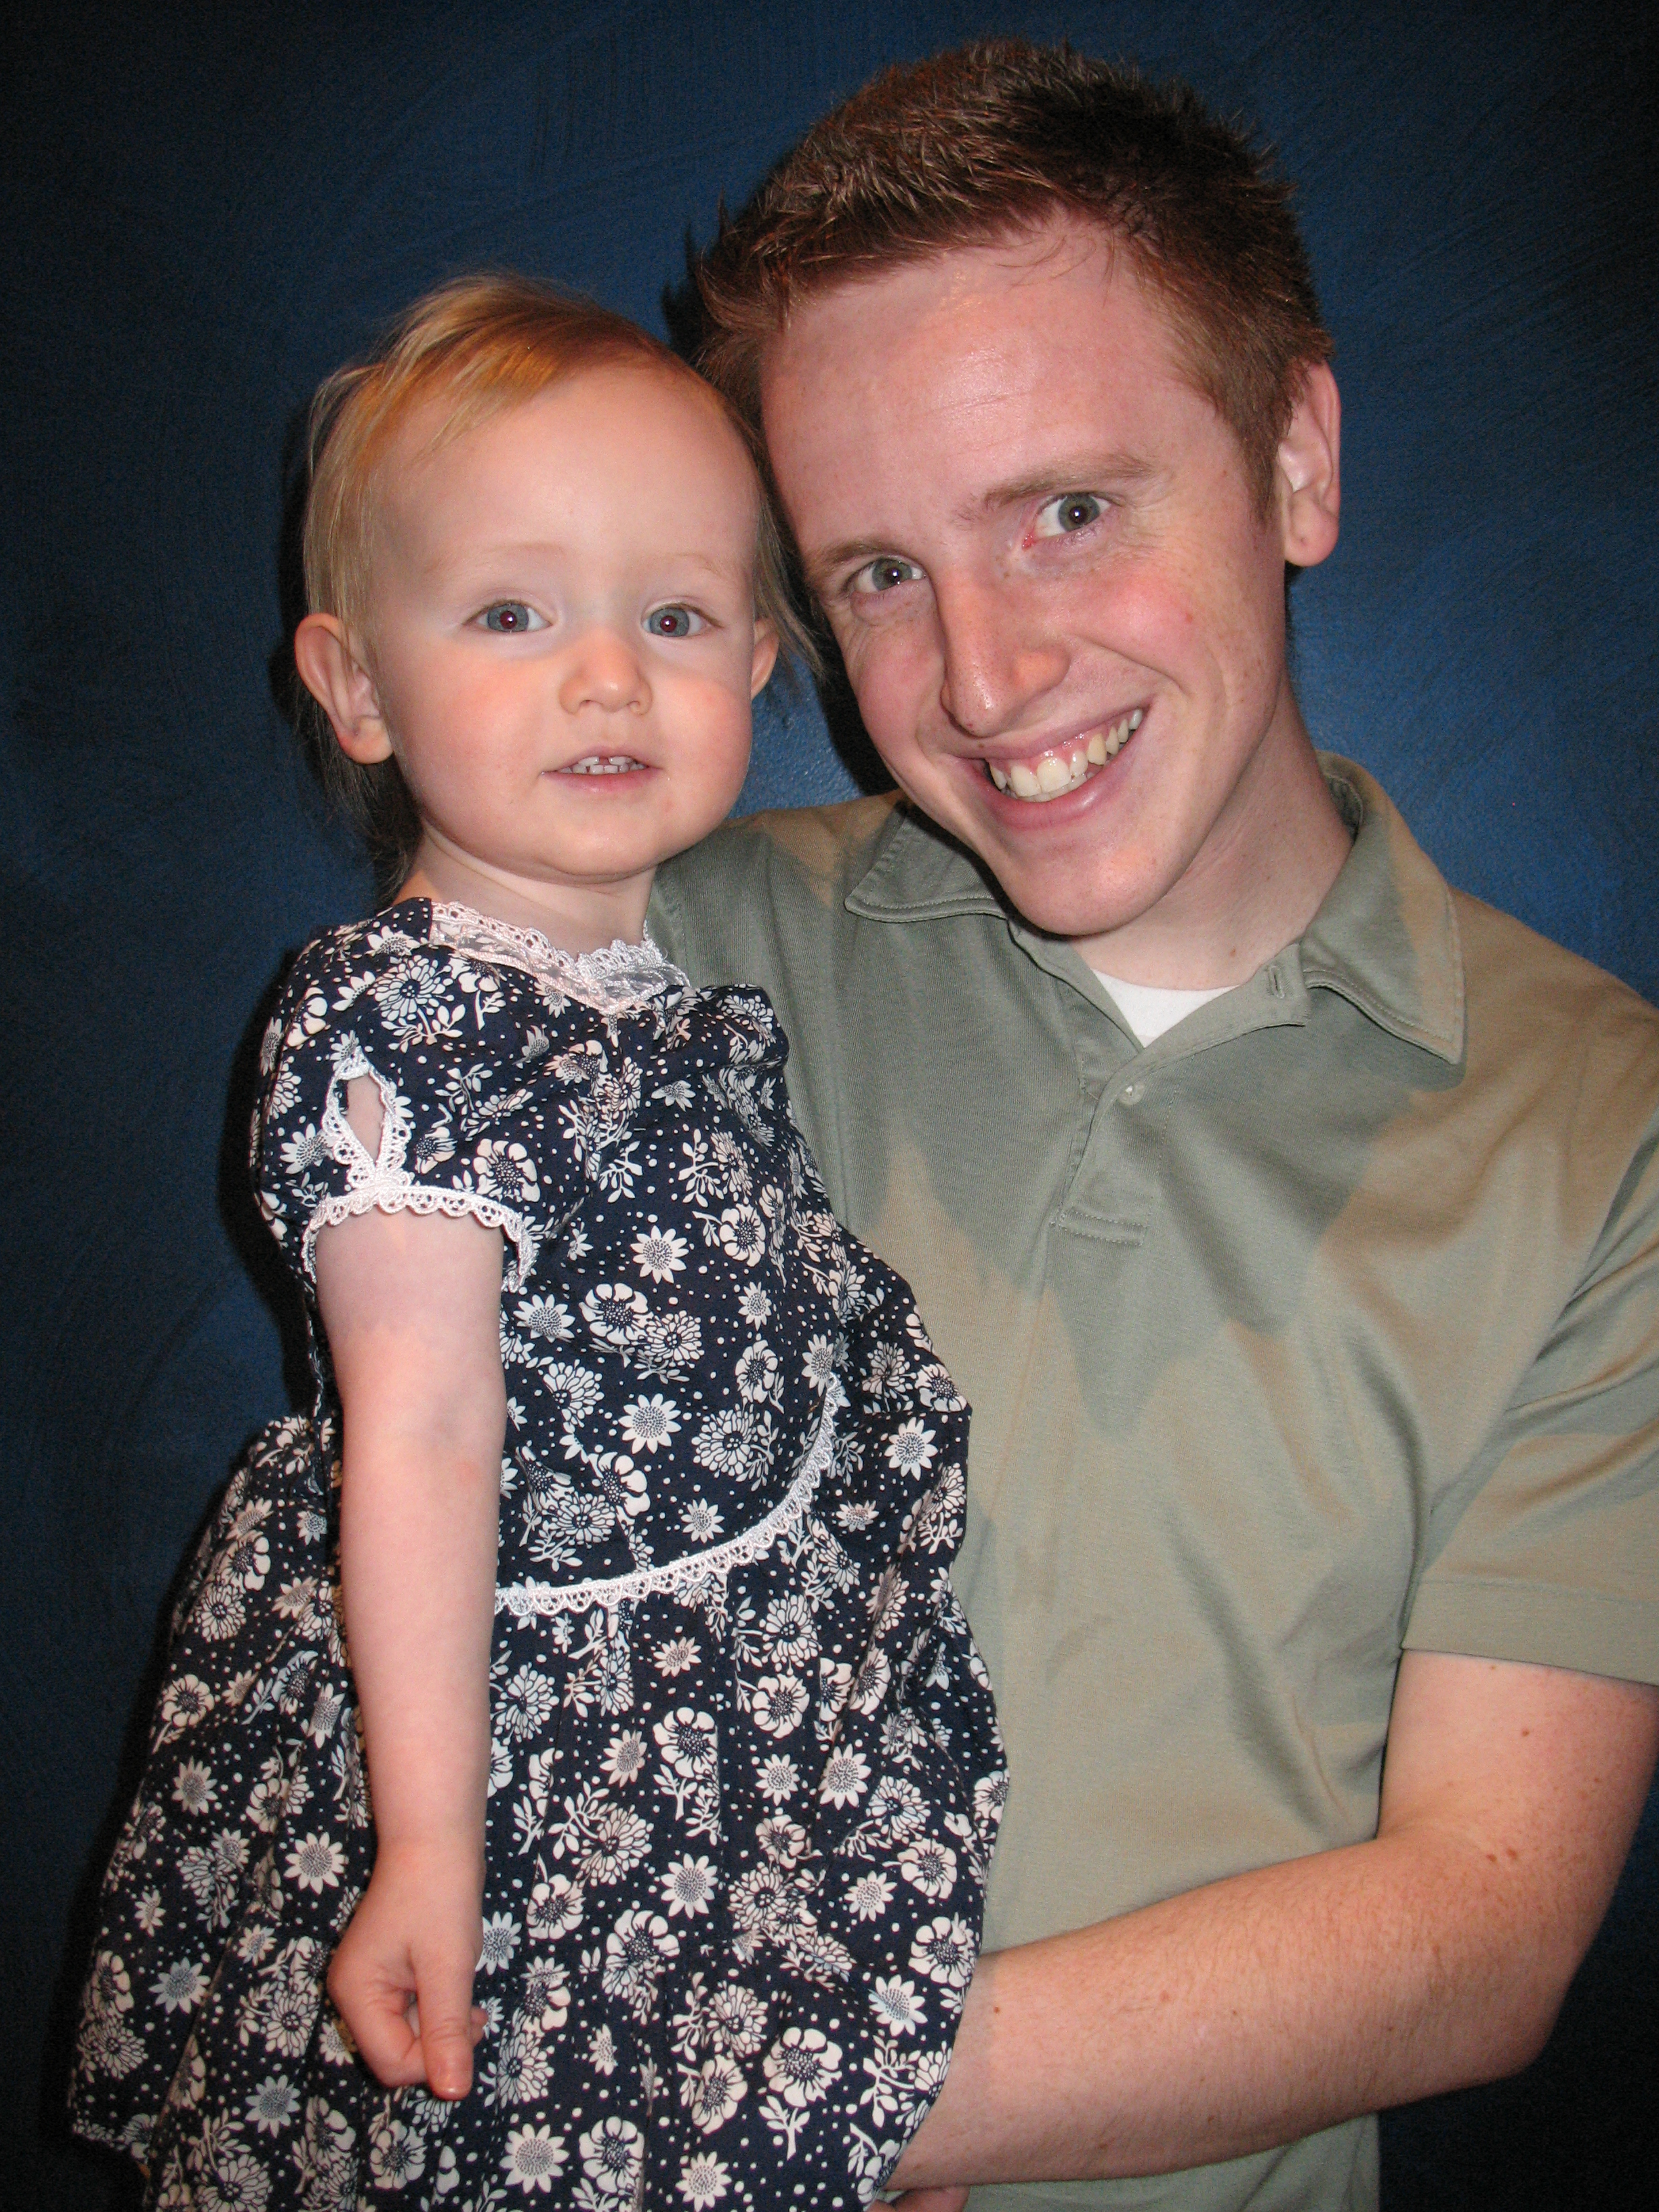 easter-2007-tris-and-guini.jpg